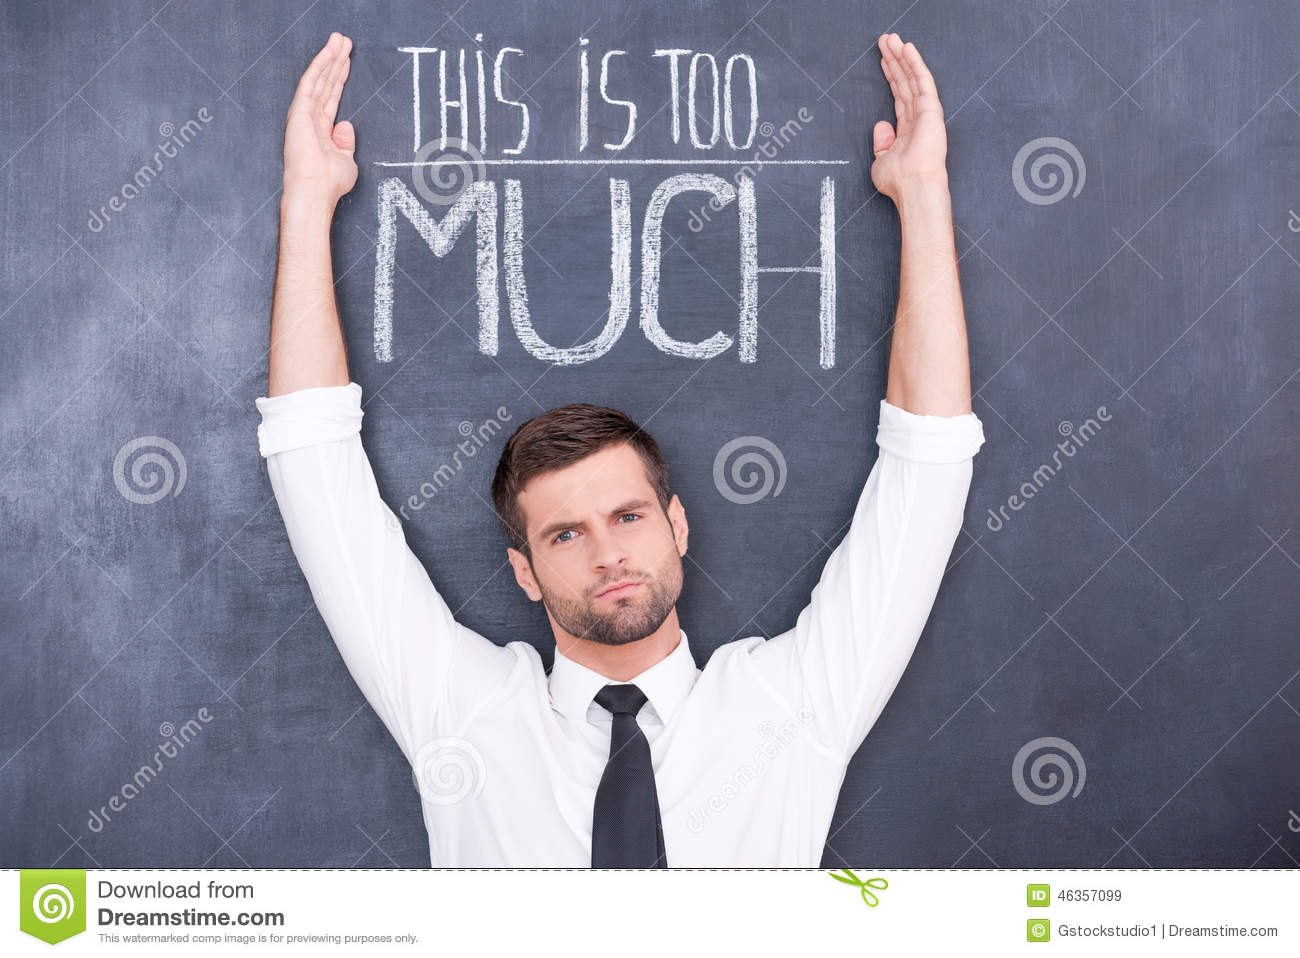 This Is Too Much For Me. Stock Image. Image Of Chalkboard